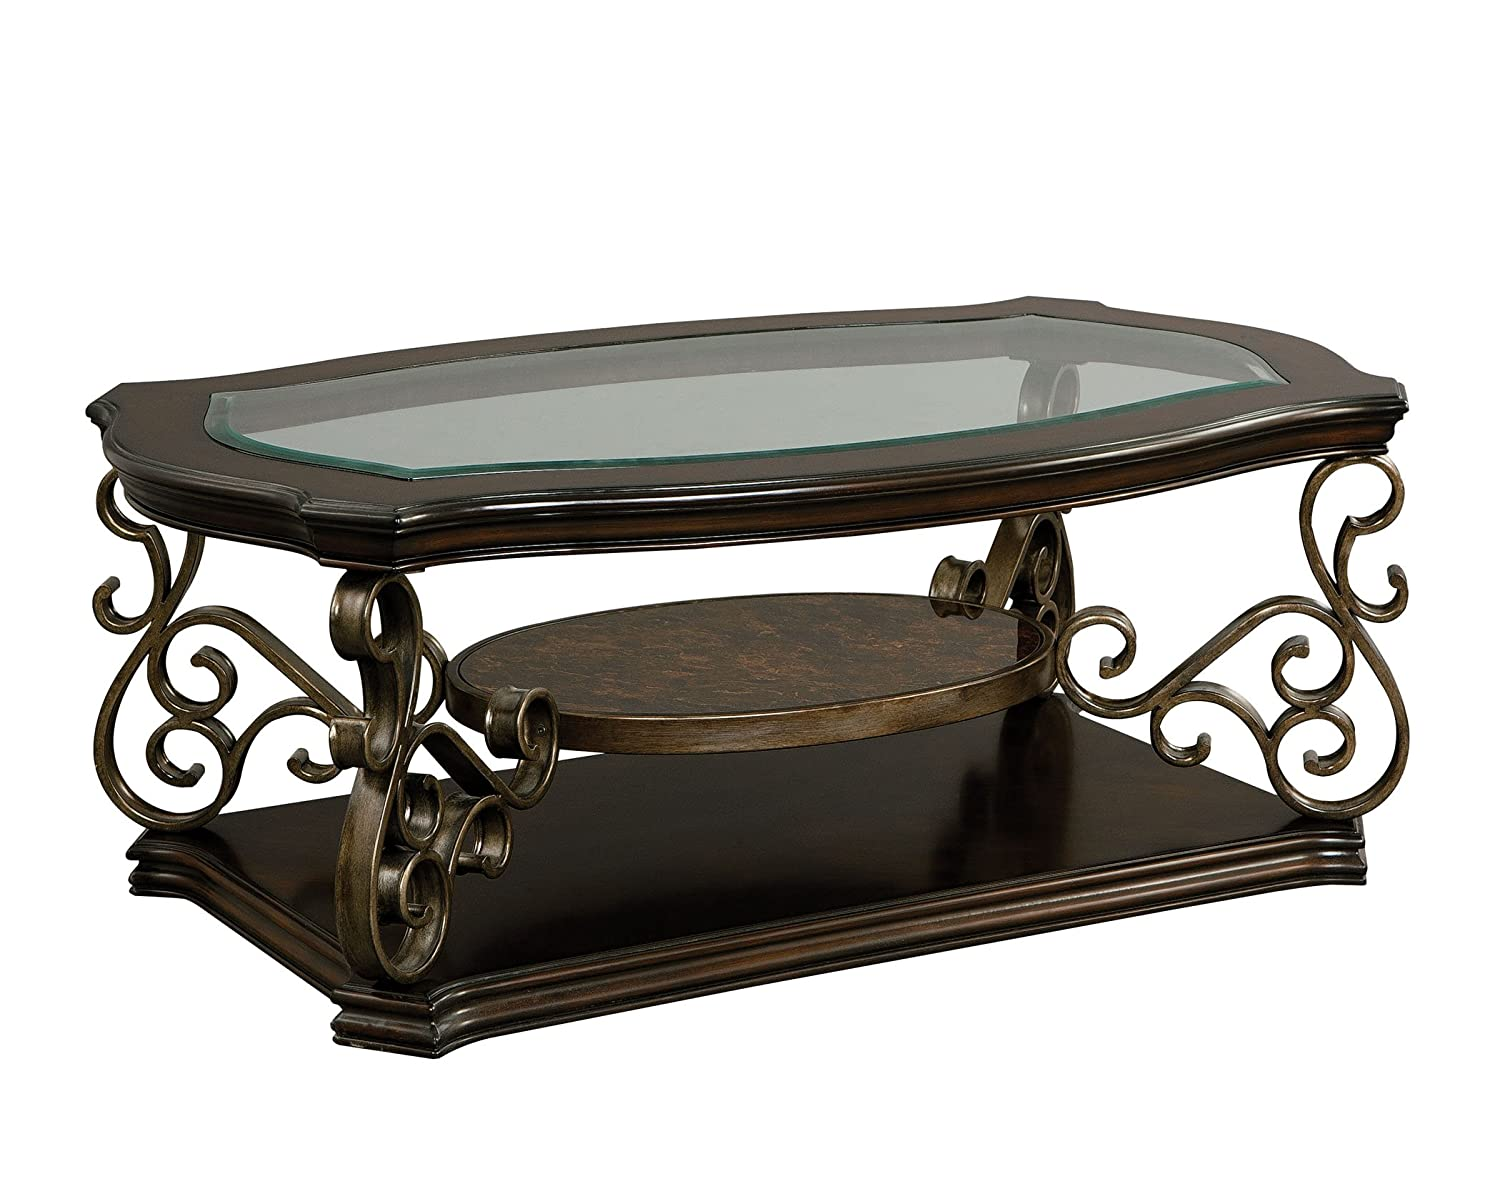 Standard Furniture Seville Cocktail Table, Warm Burnished Bronze Base